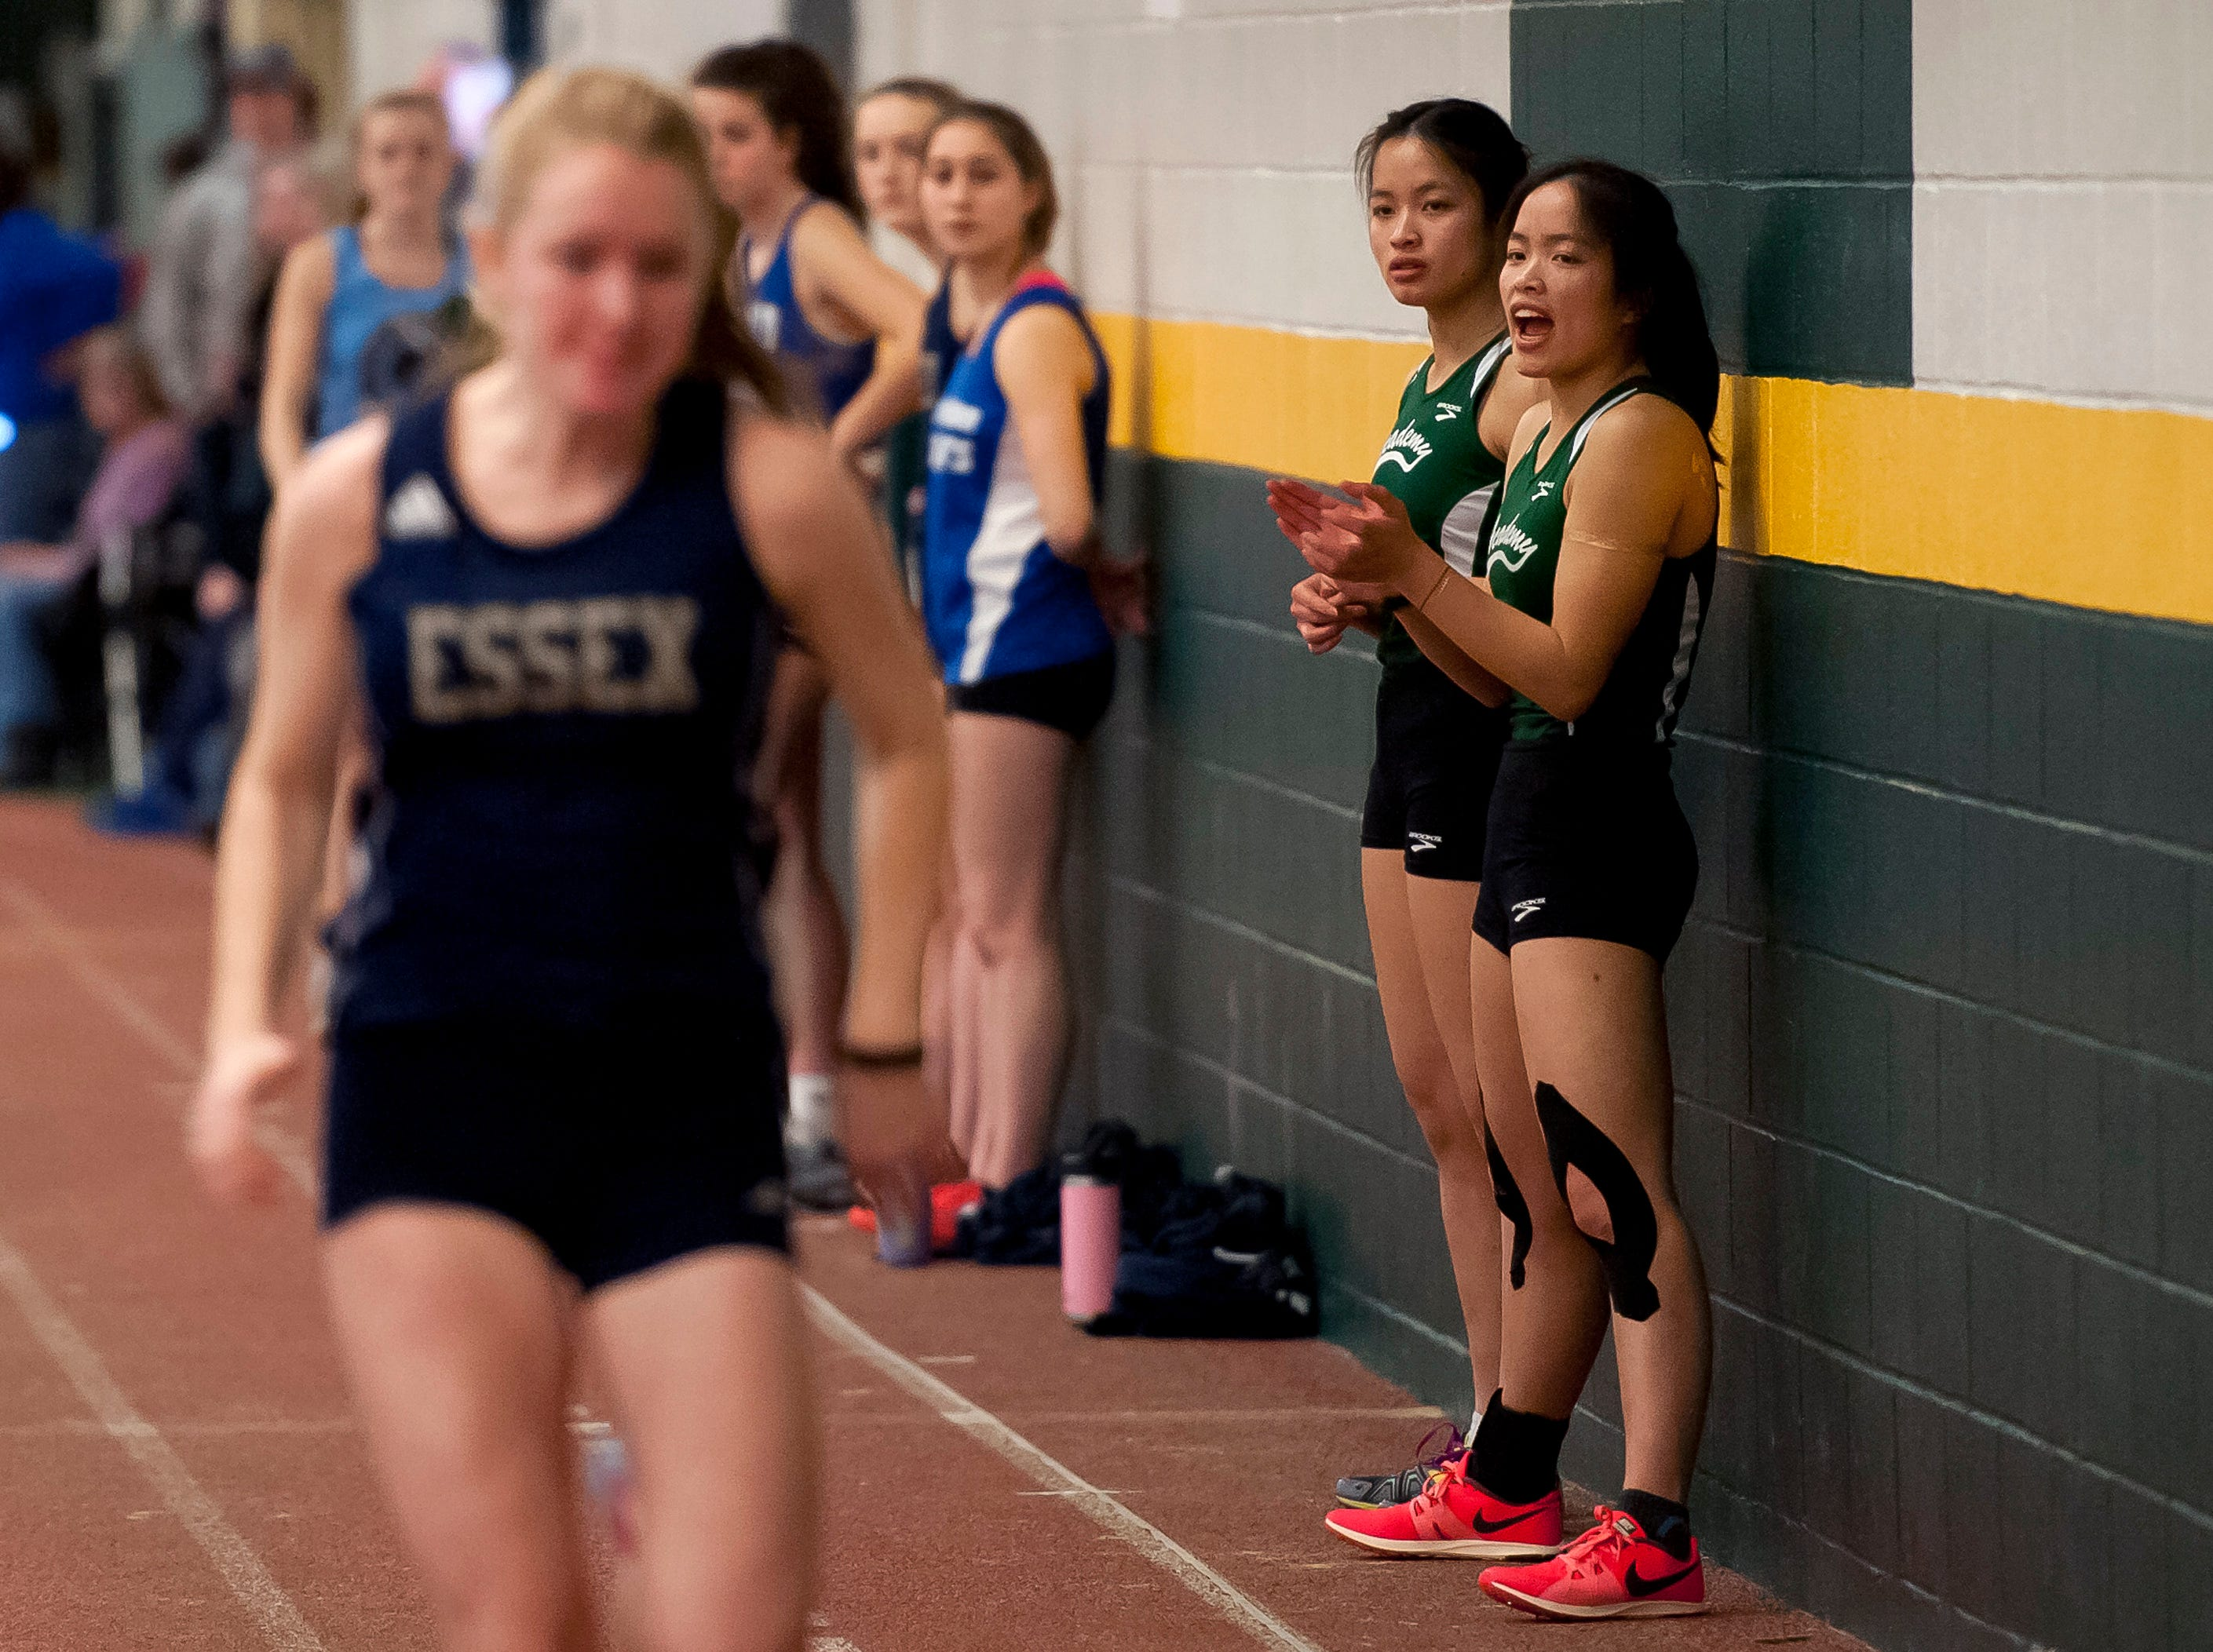 St. Johnsbury twins Lia Rotti, right, and Jen Rotti cheer on the action at the high school indoor track state championships at the University of Vermont on Saturday.